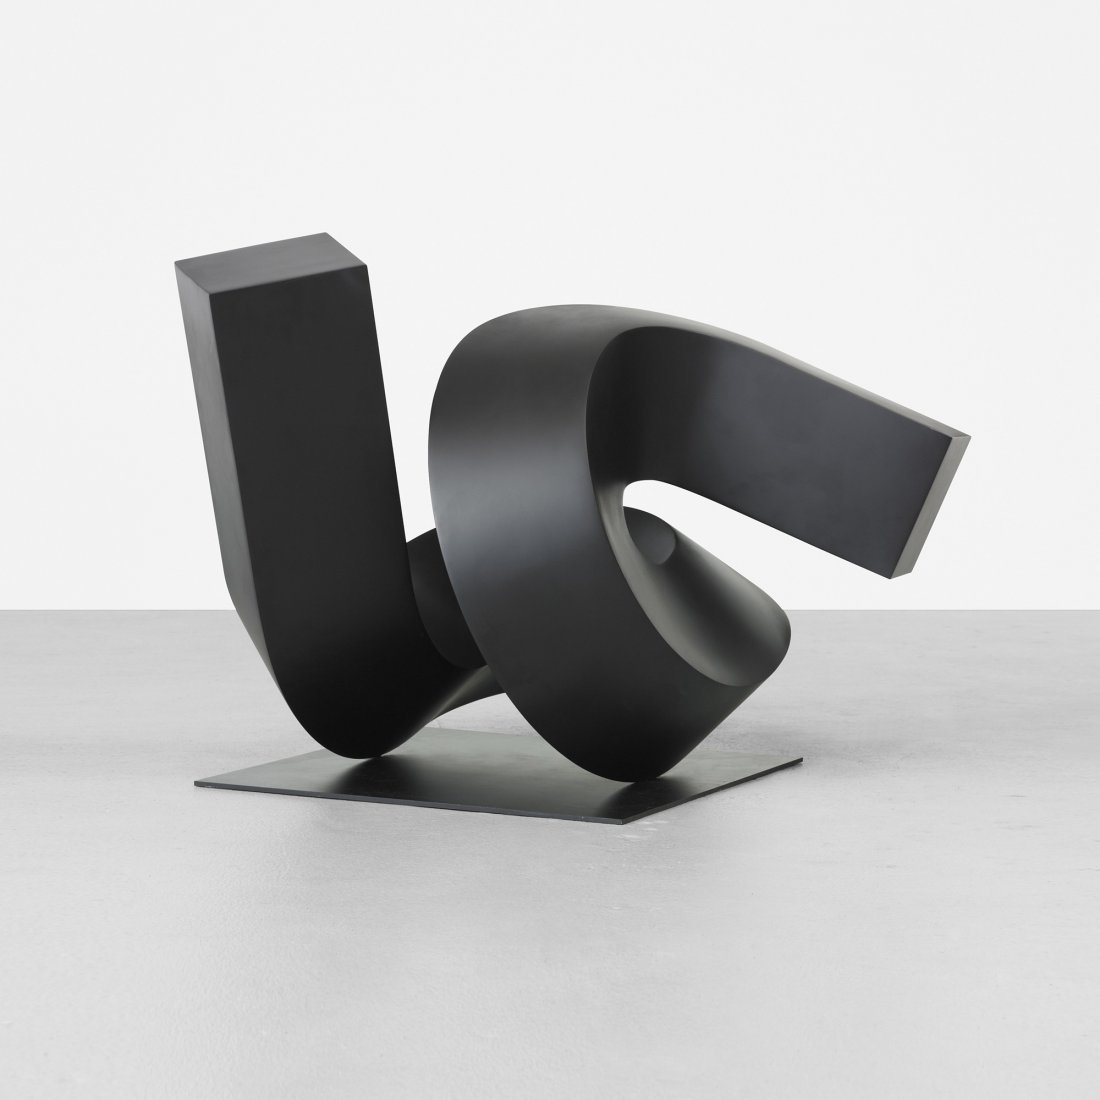 118: Clement Meadmore Around and About